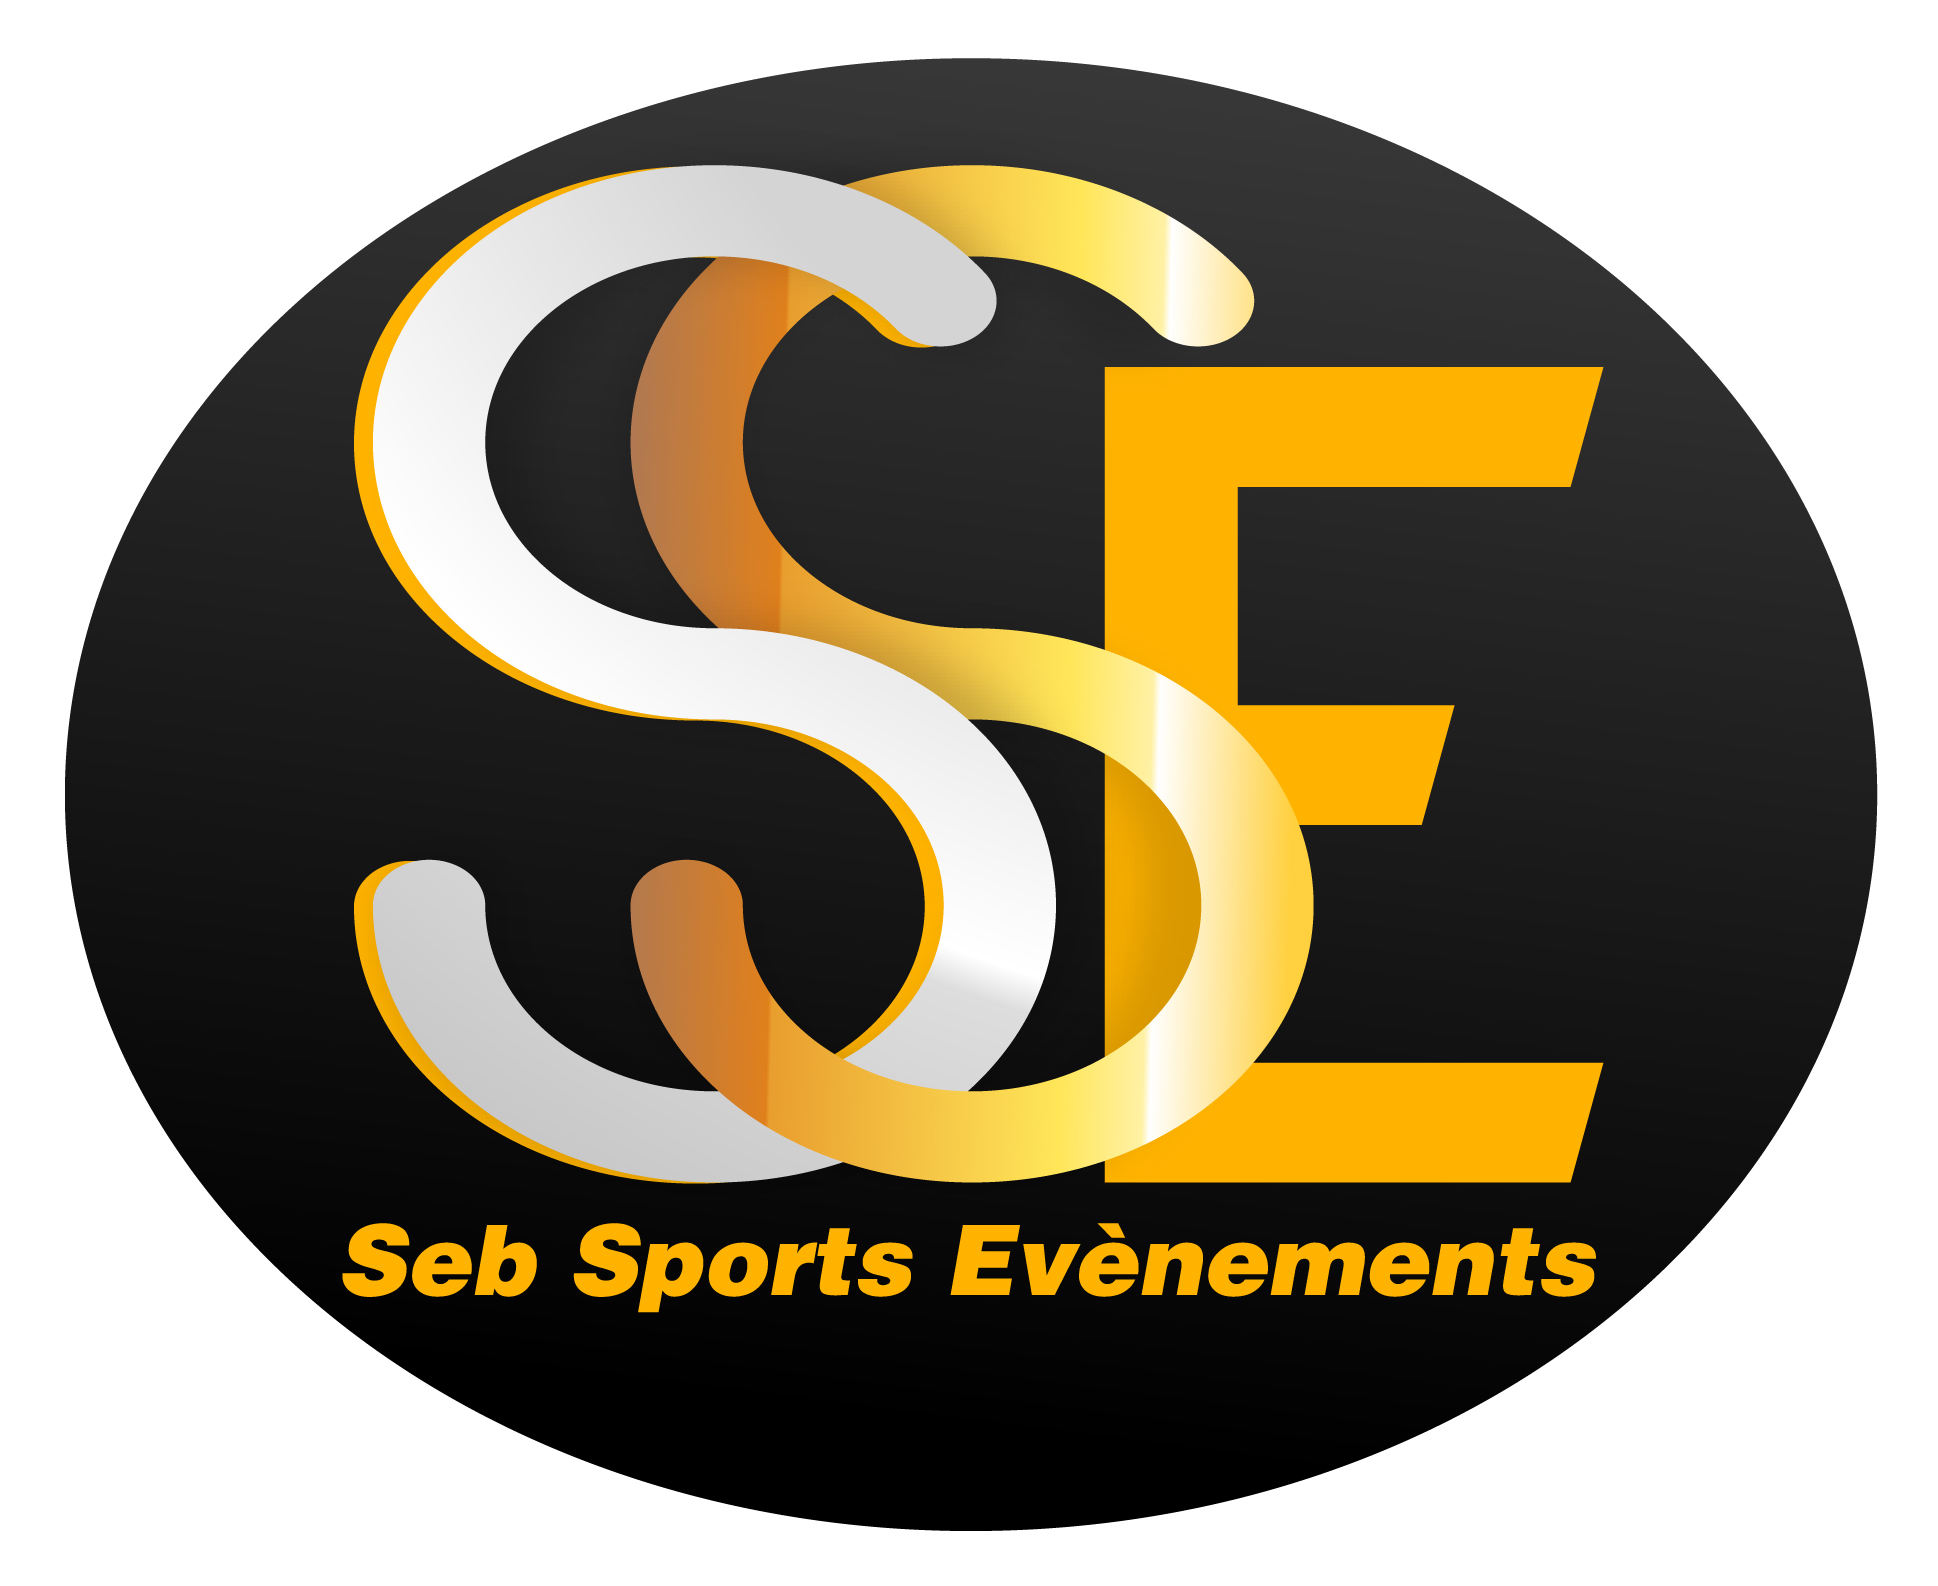 sebsportsevenements